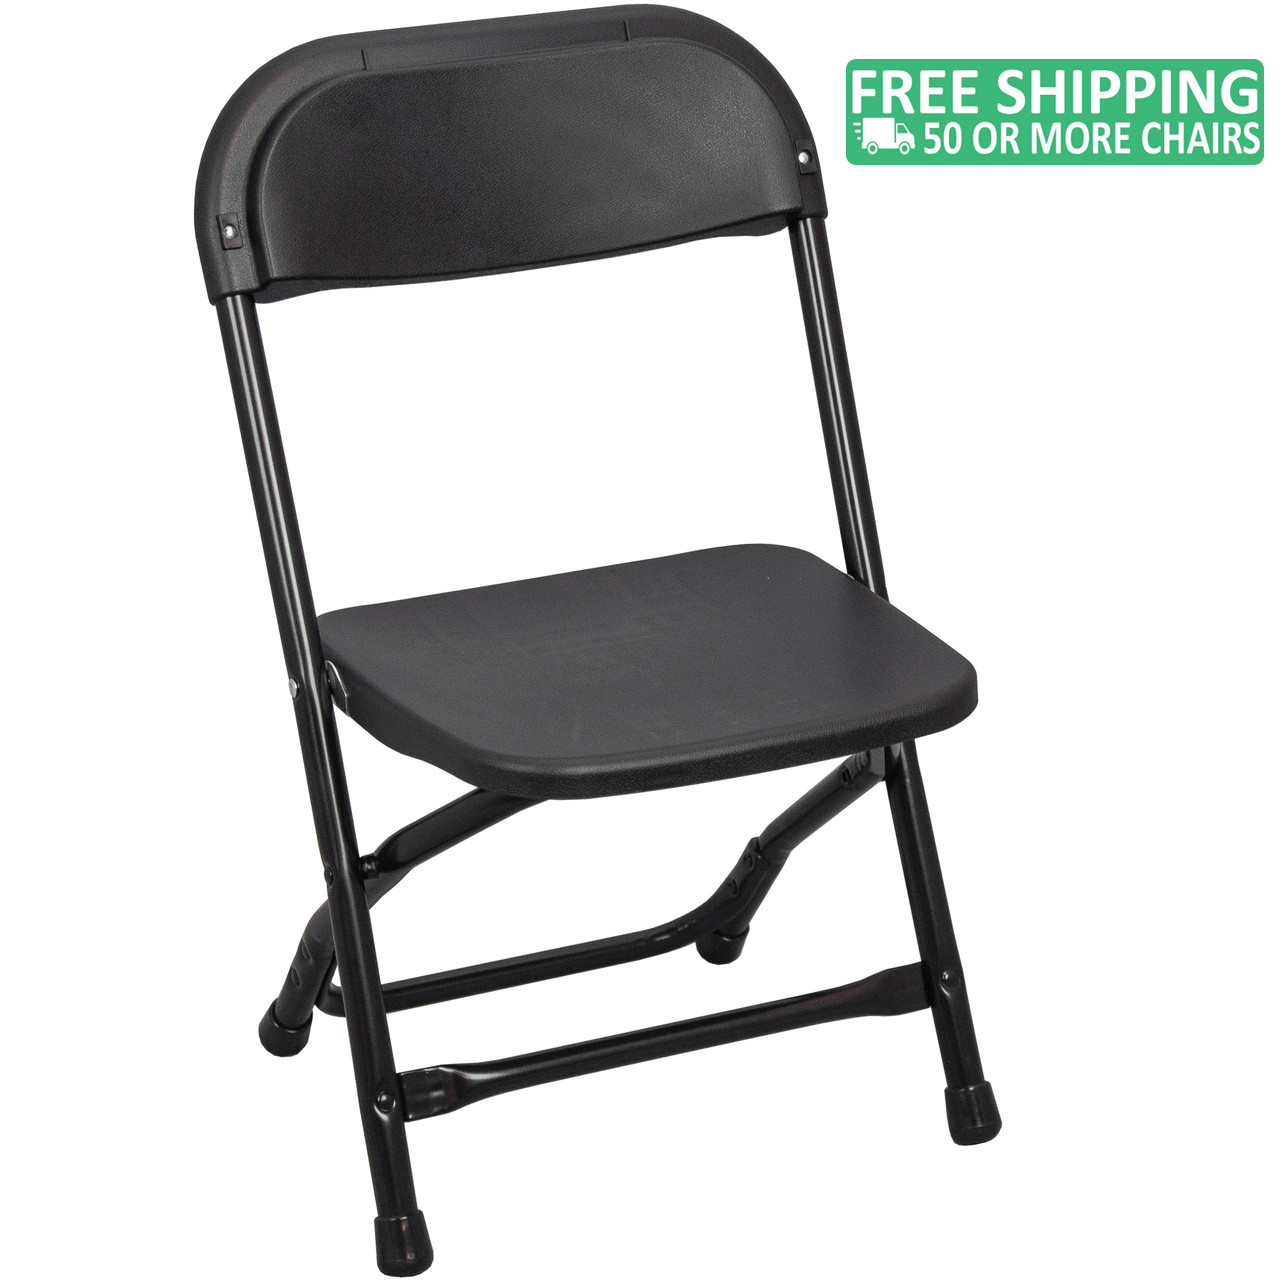 Plastic Kids Chairs Advantage Kids Black Plastic Folding Chair Ppfckid Black